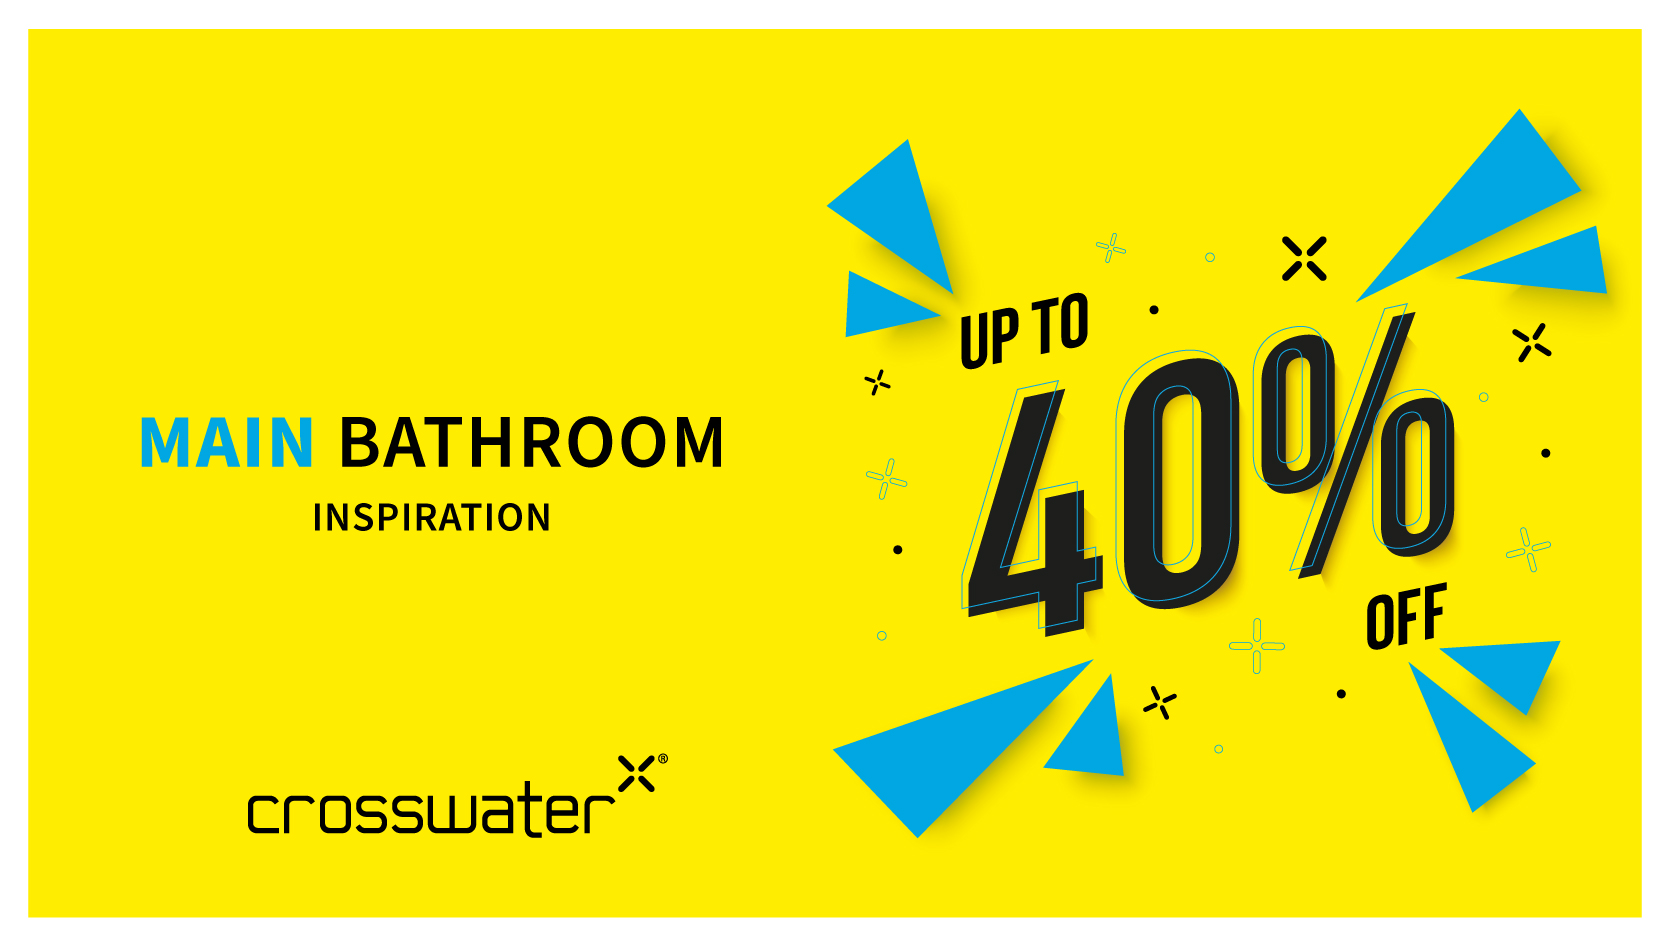 Main Bathroom up to 40% off Banner